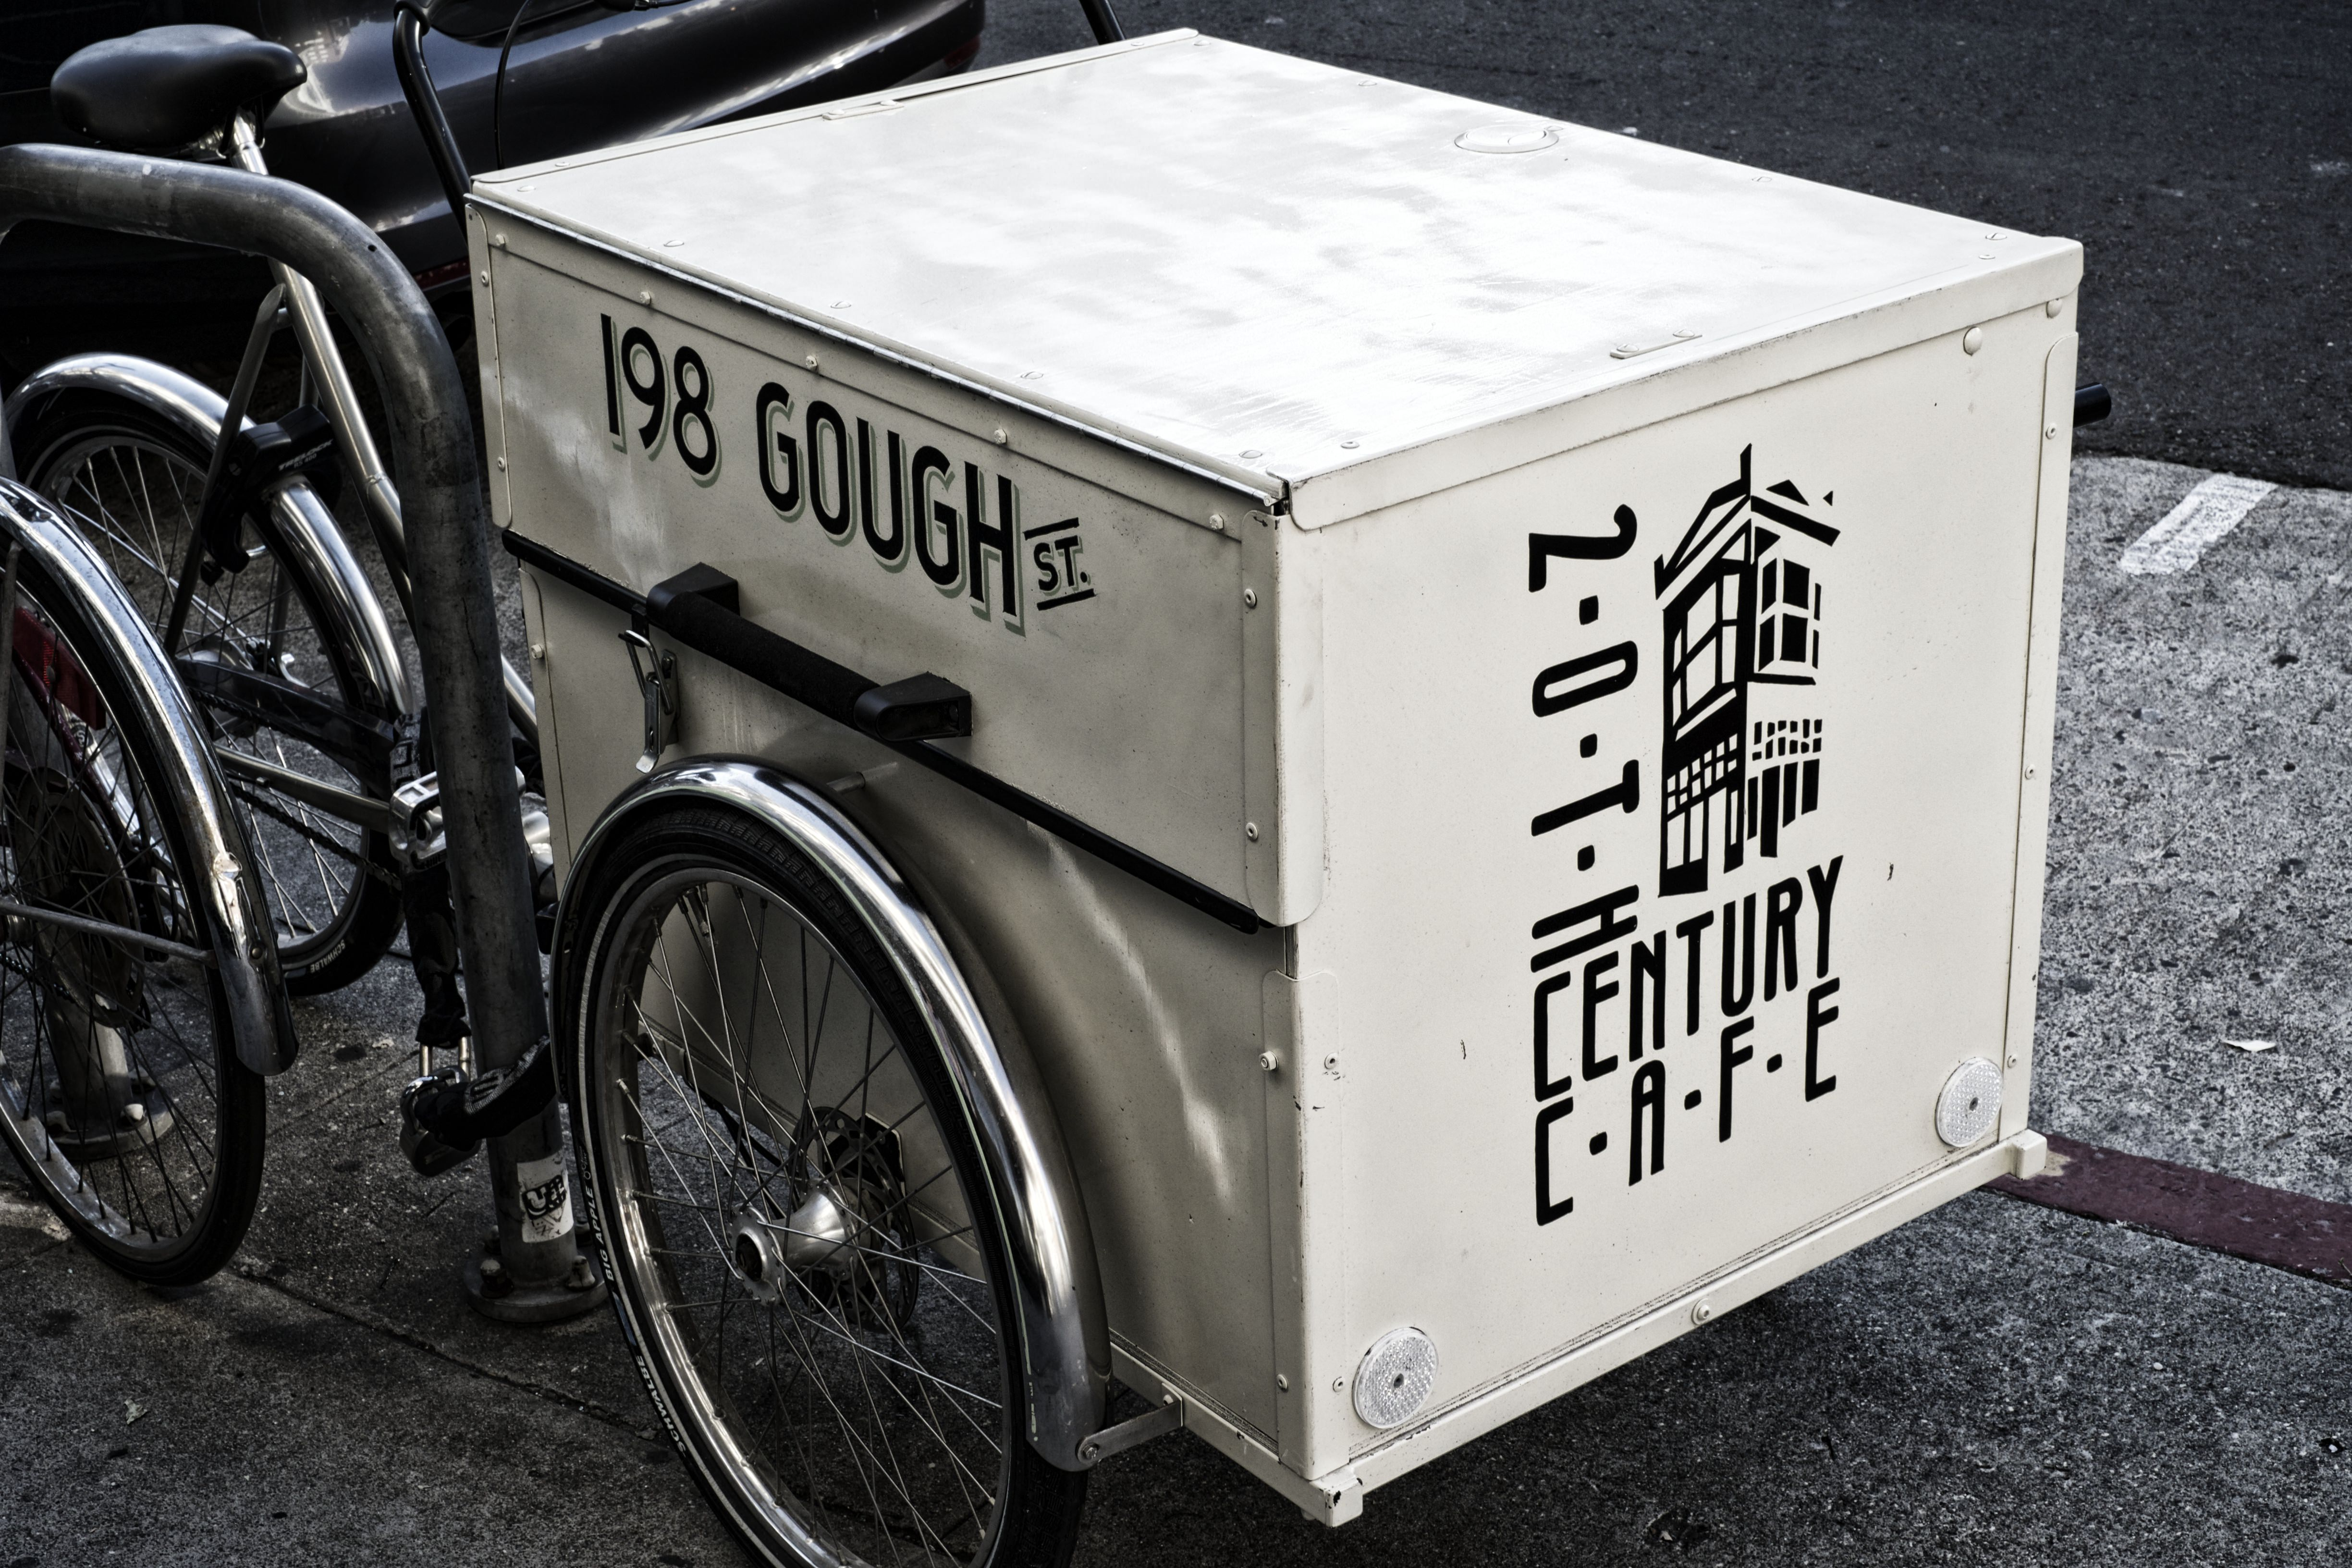 20th Century Cafe delivery bike